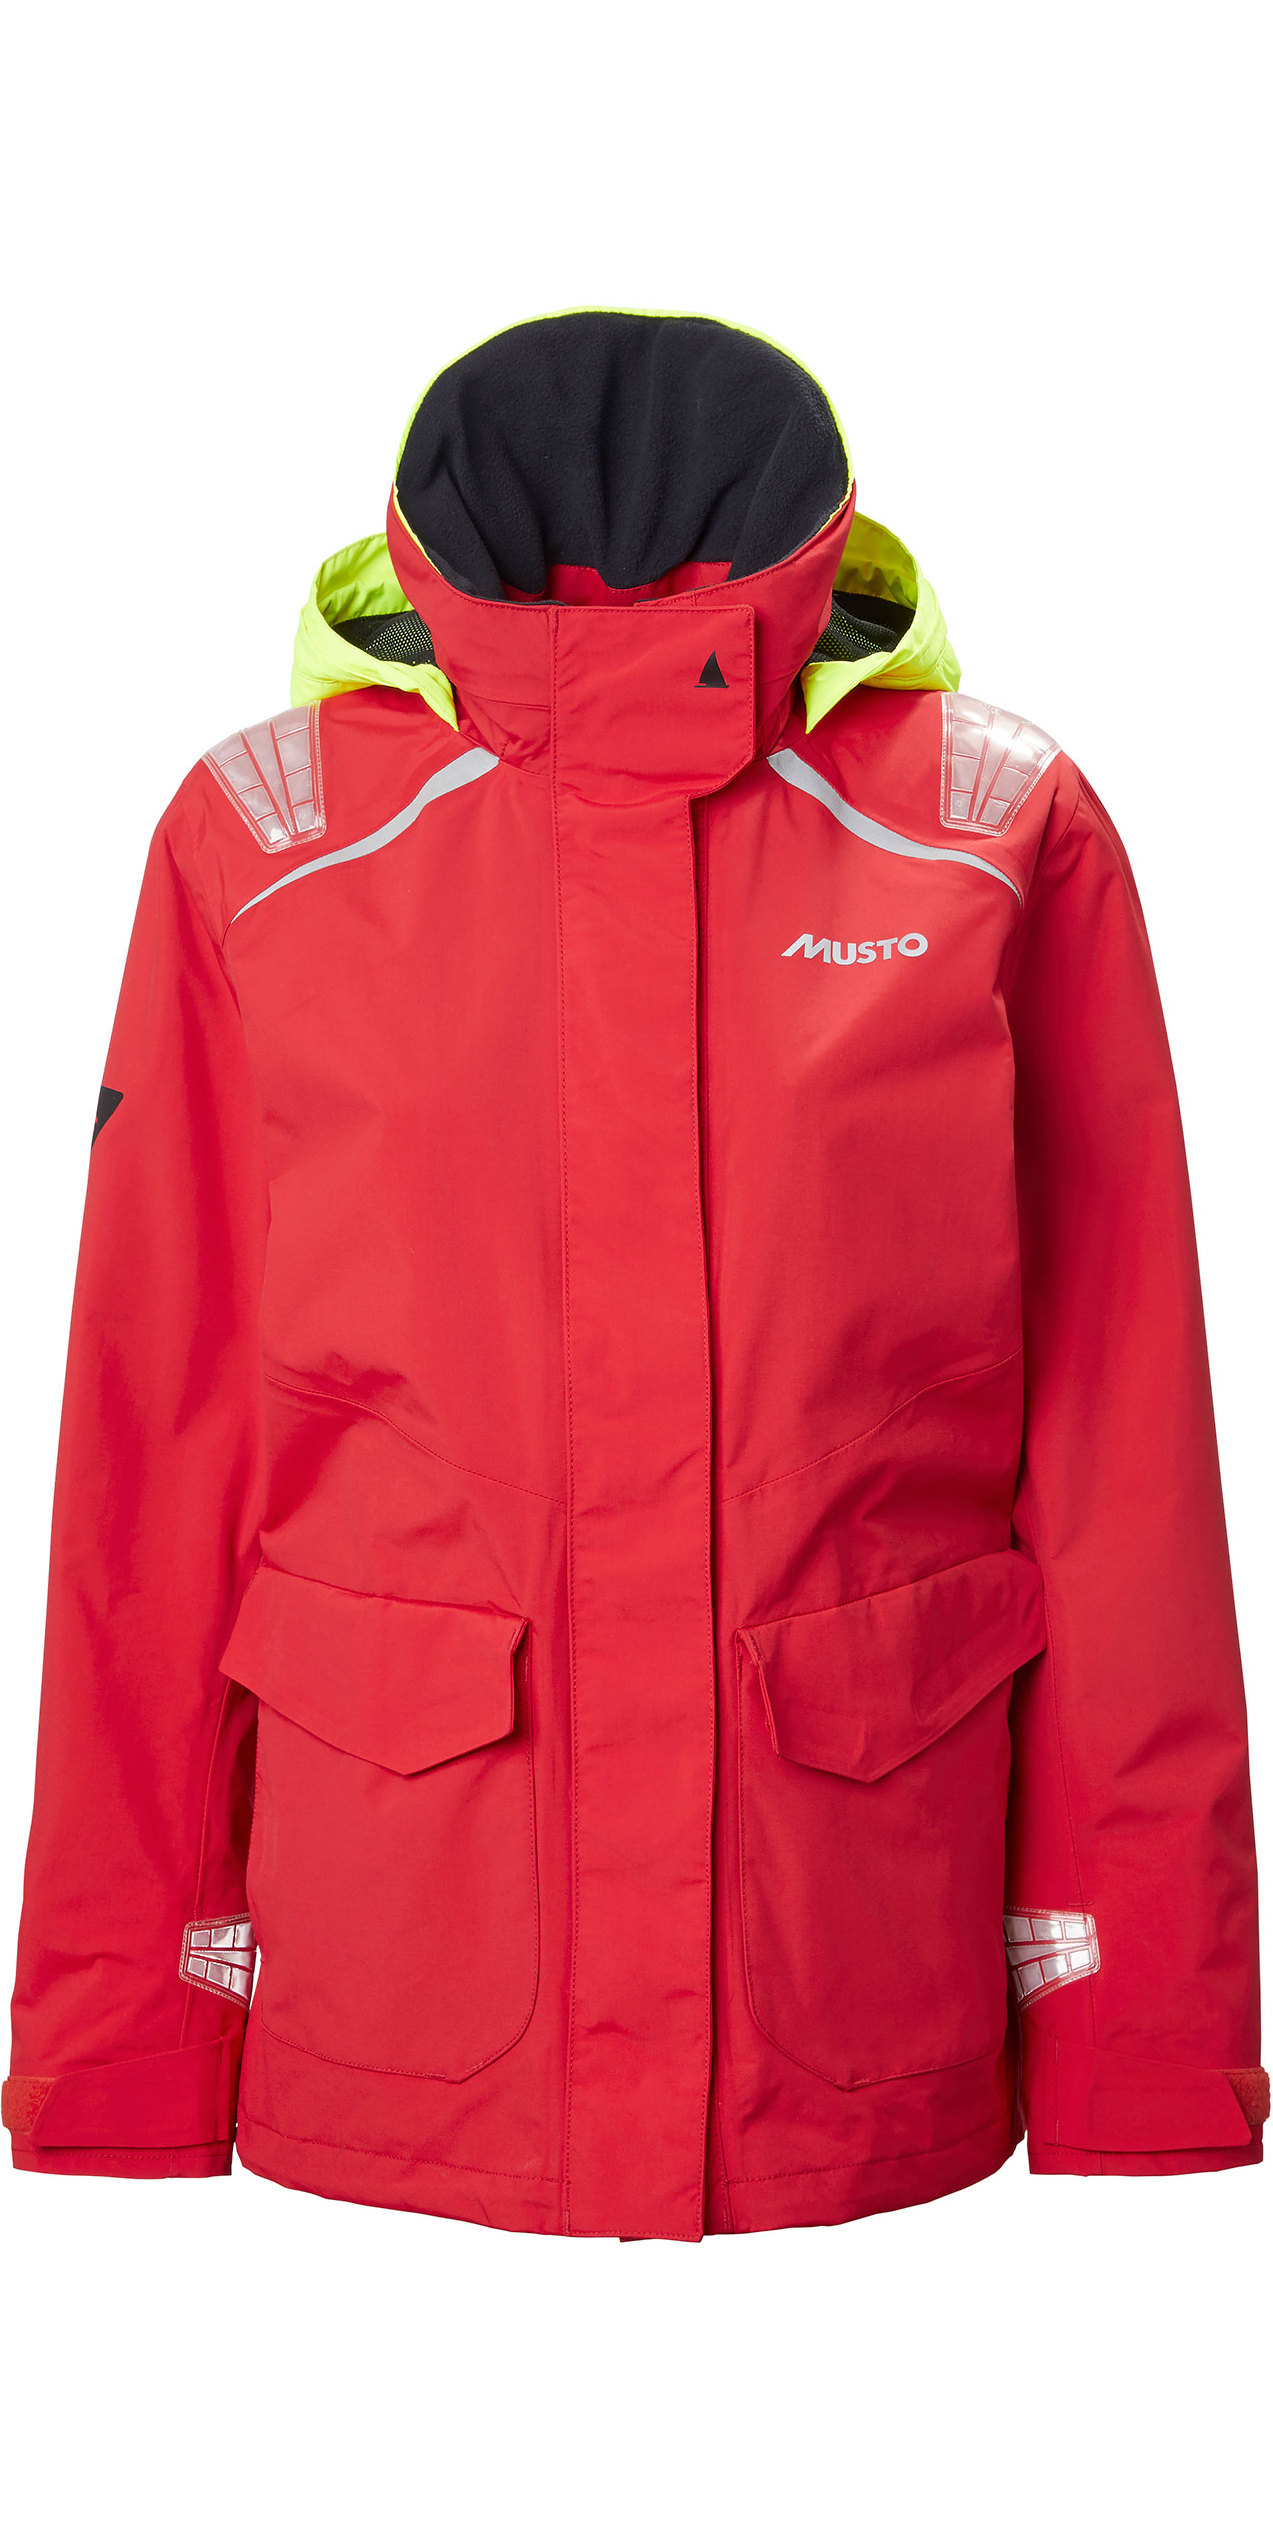 2020 Musto Womens BR1 Inshore Sailing Jacket 81221 True Red